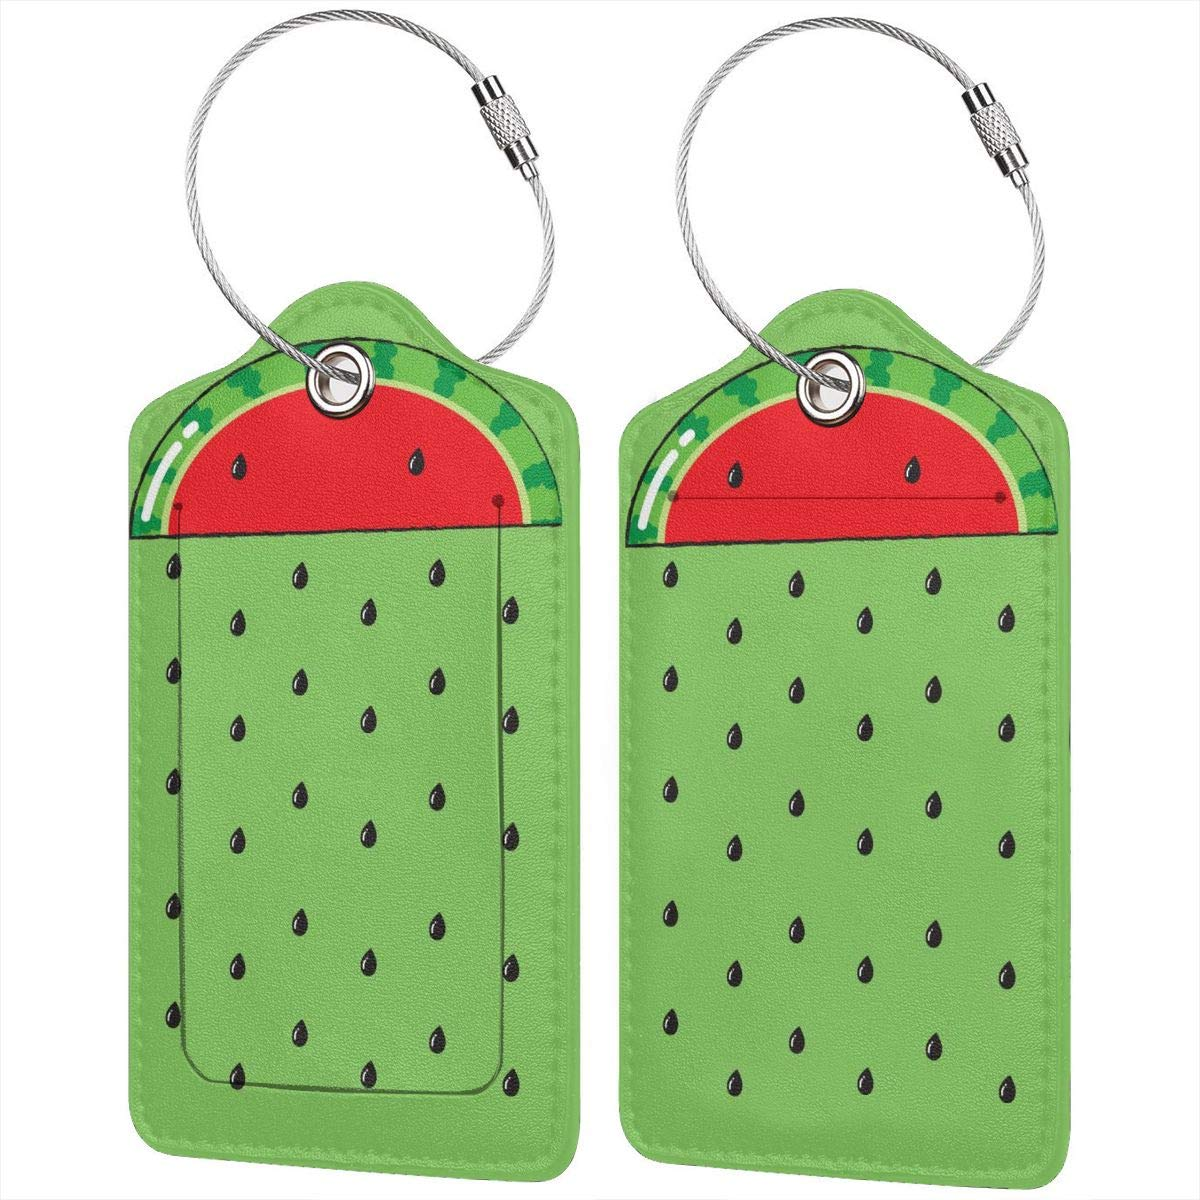 GoldK Watermelon Rain Pattern Leather Luggage Tags Baggage Bag Instrument Tag Travel Labels Accessories with Privacy Cover